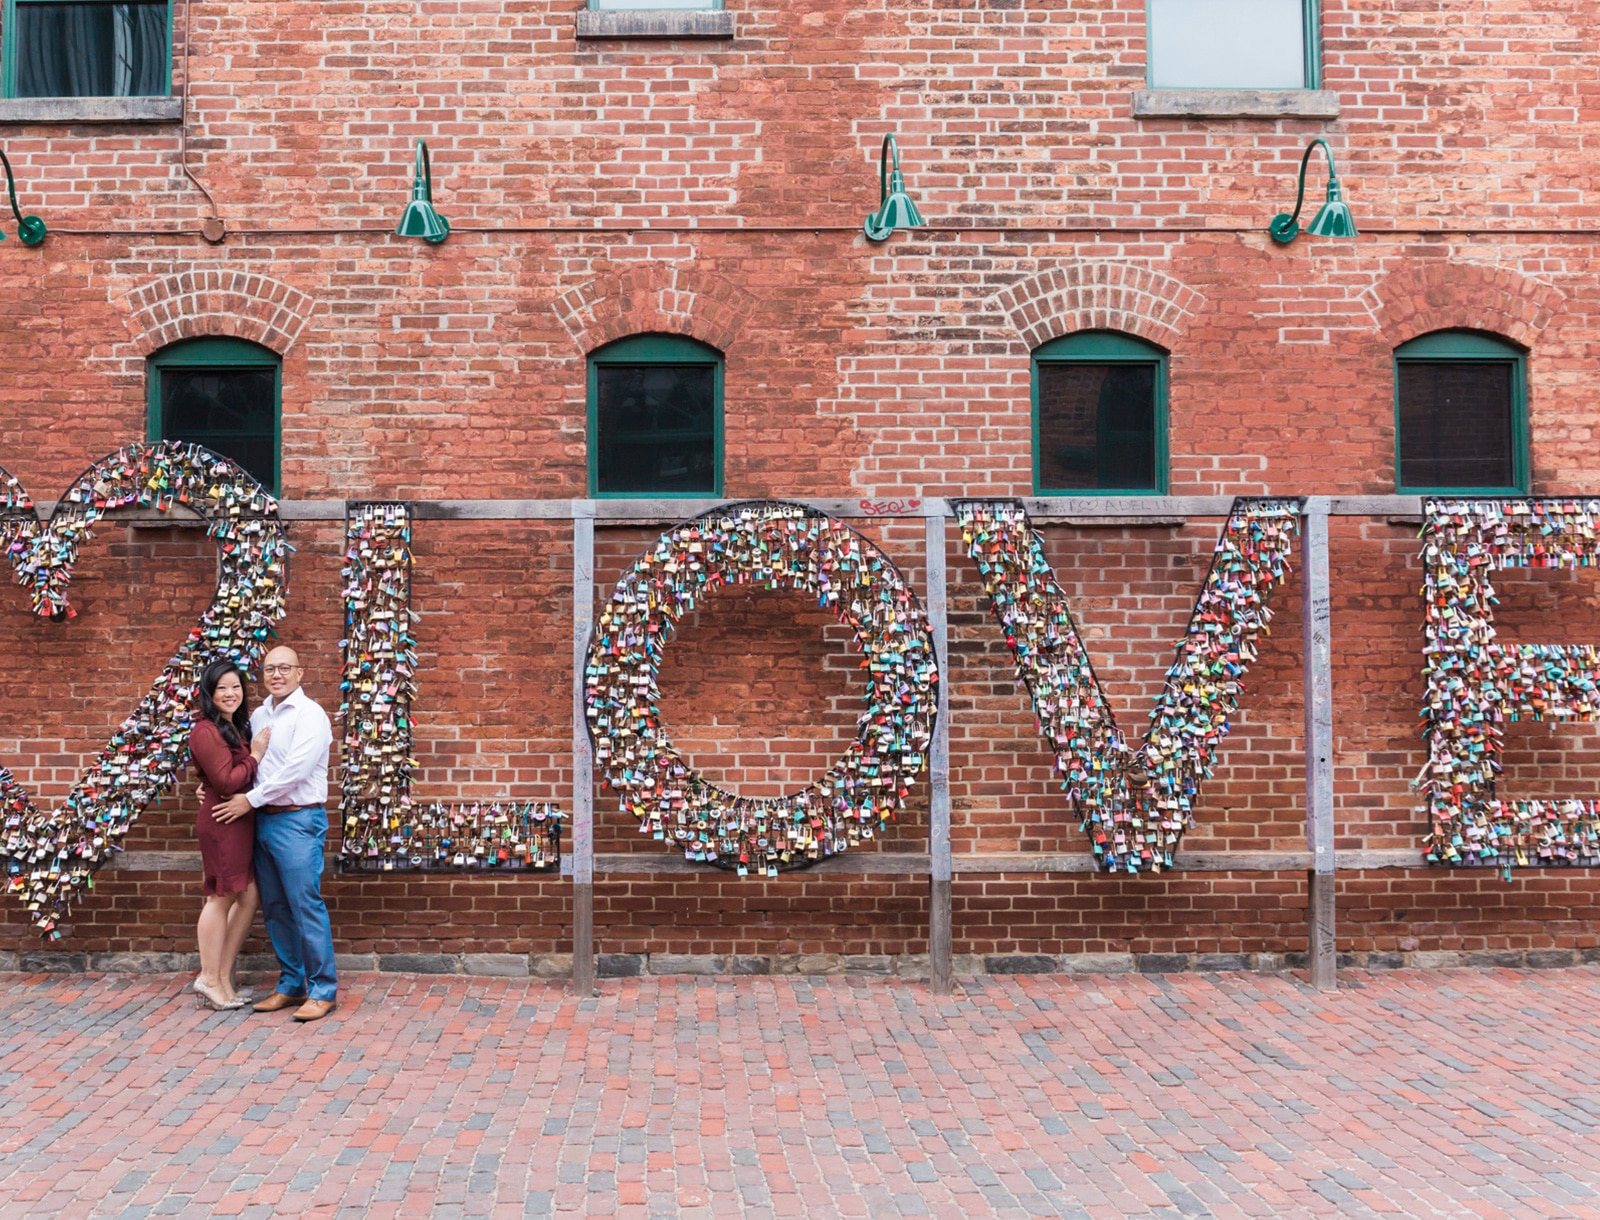 Toronto Distillery District Engagement Photos: Anna + Vince